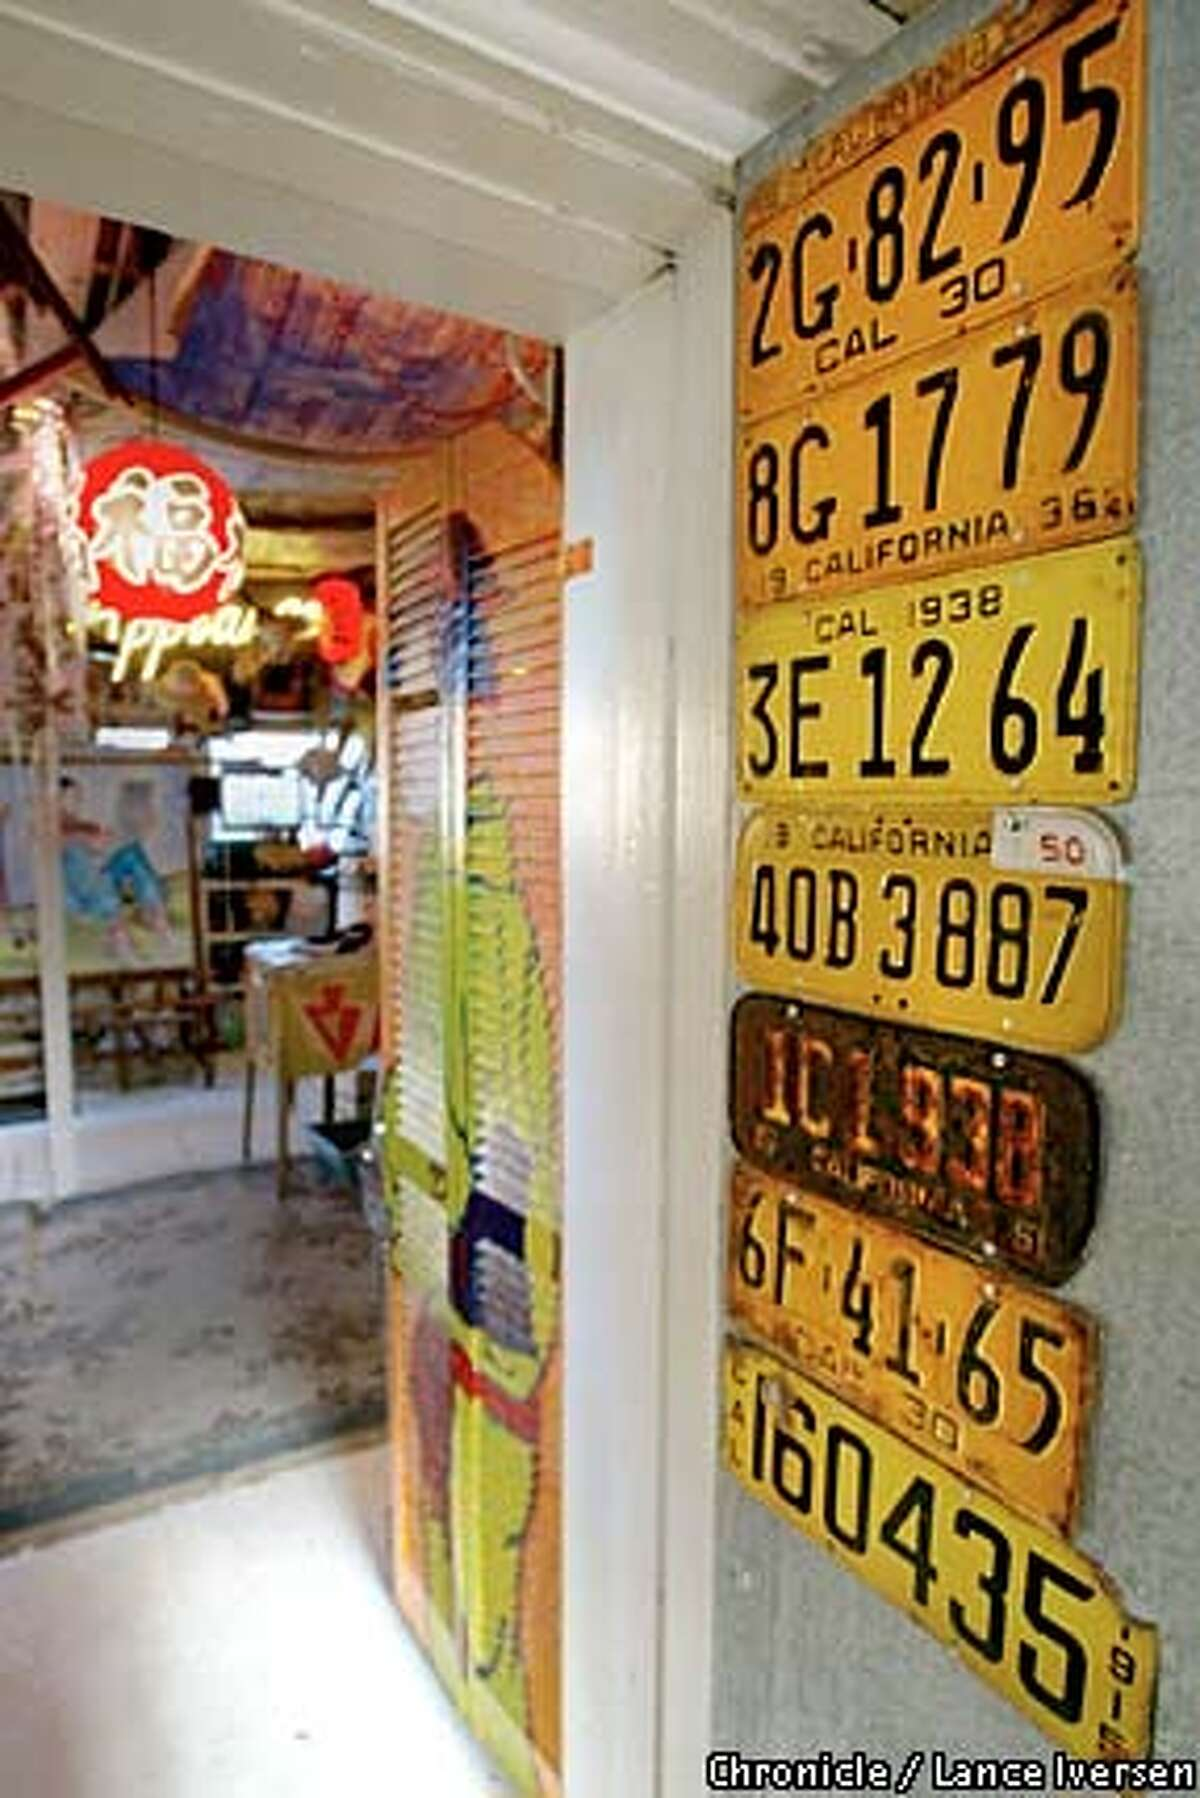 Front Door: A collection of old California license plates greets the visitor to Fontes' studio. Chronicle photo by Lance Iversen